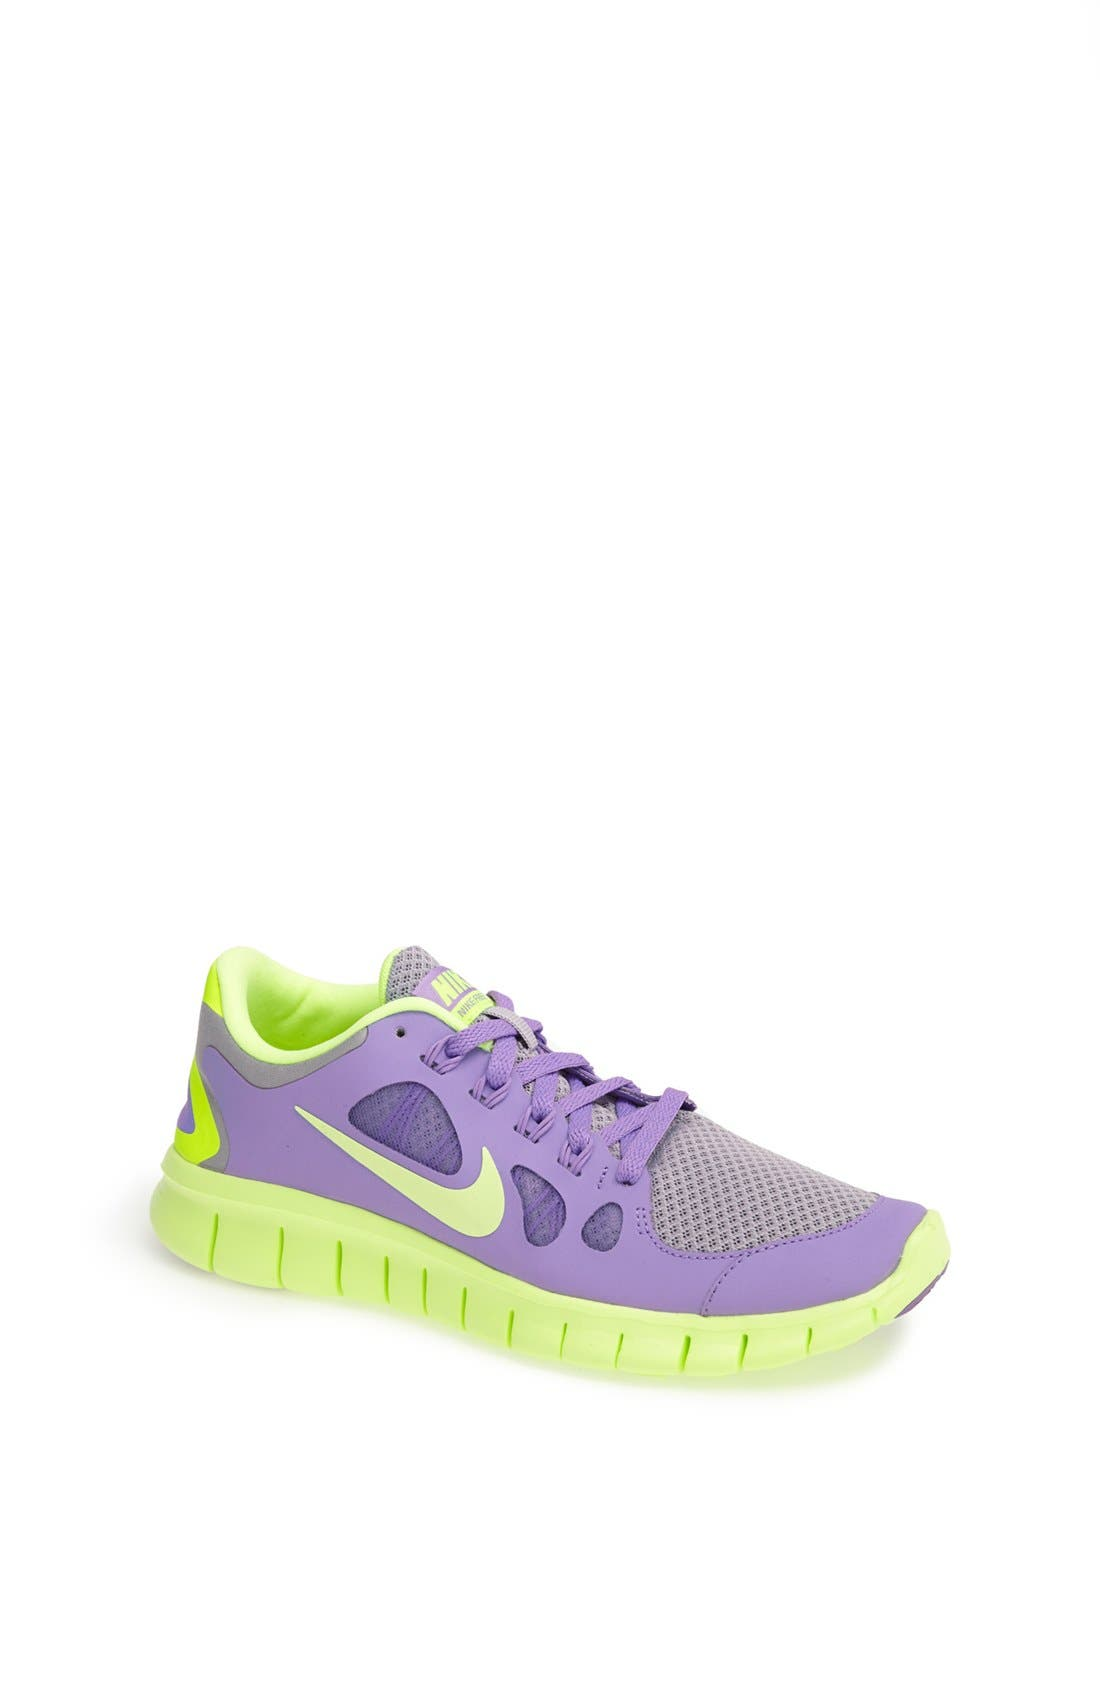 Alternate Image 1 Selected - Nike 'Free Run 5.0' Sneaker (Big Kid)